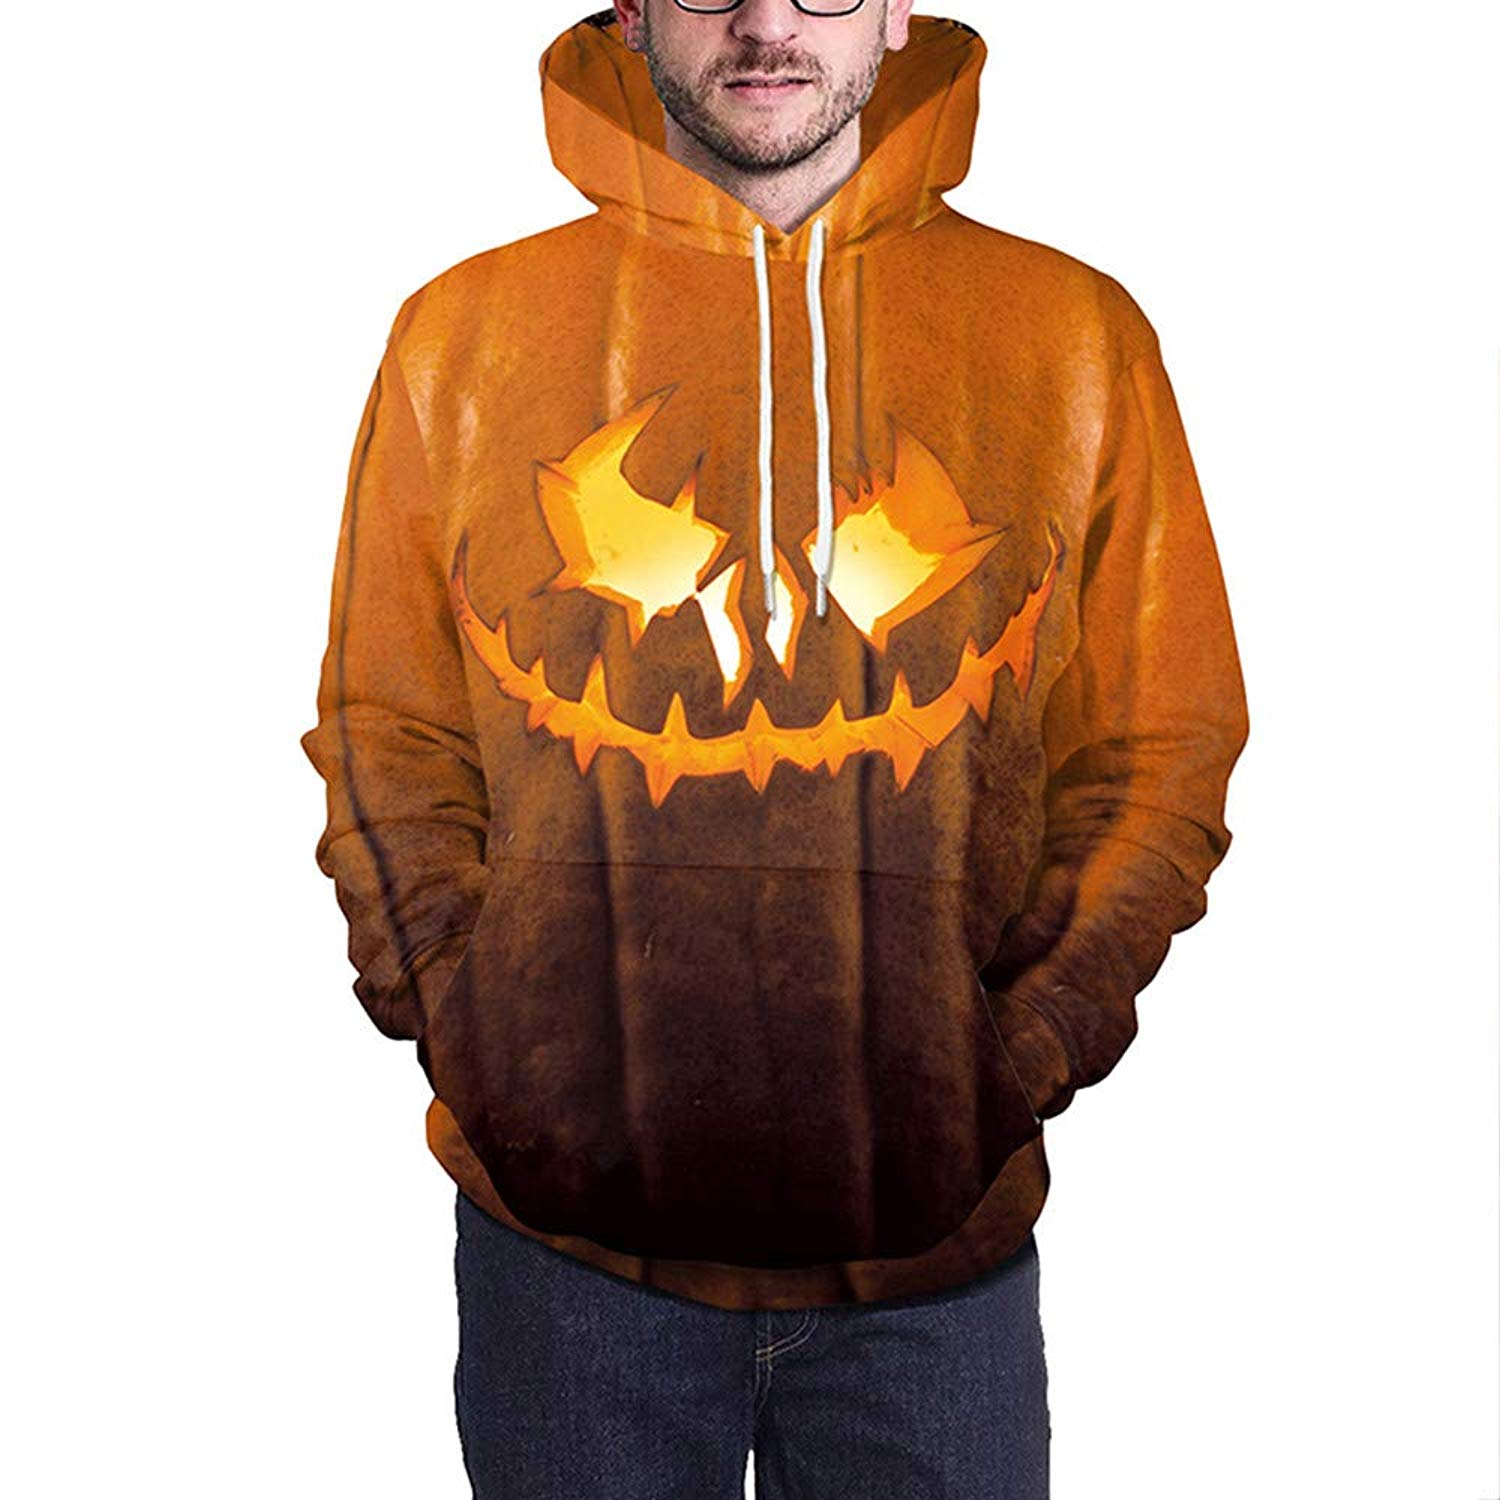 POTO Halloween Sweatshirt,Mens Pumpkin 3D Print Hoodie Sweatshirts Jumper Hooded Pullover Party Tops Blouse Shirt